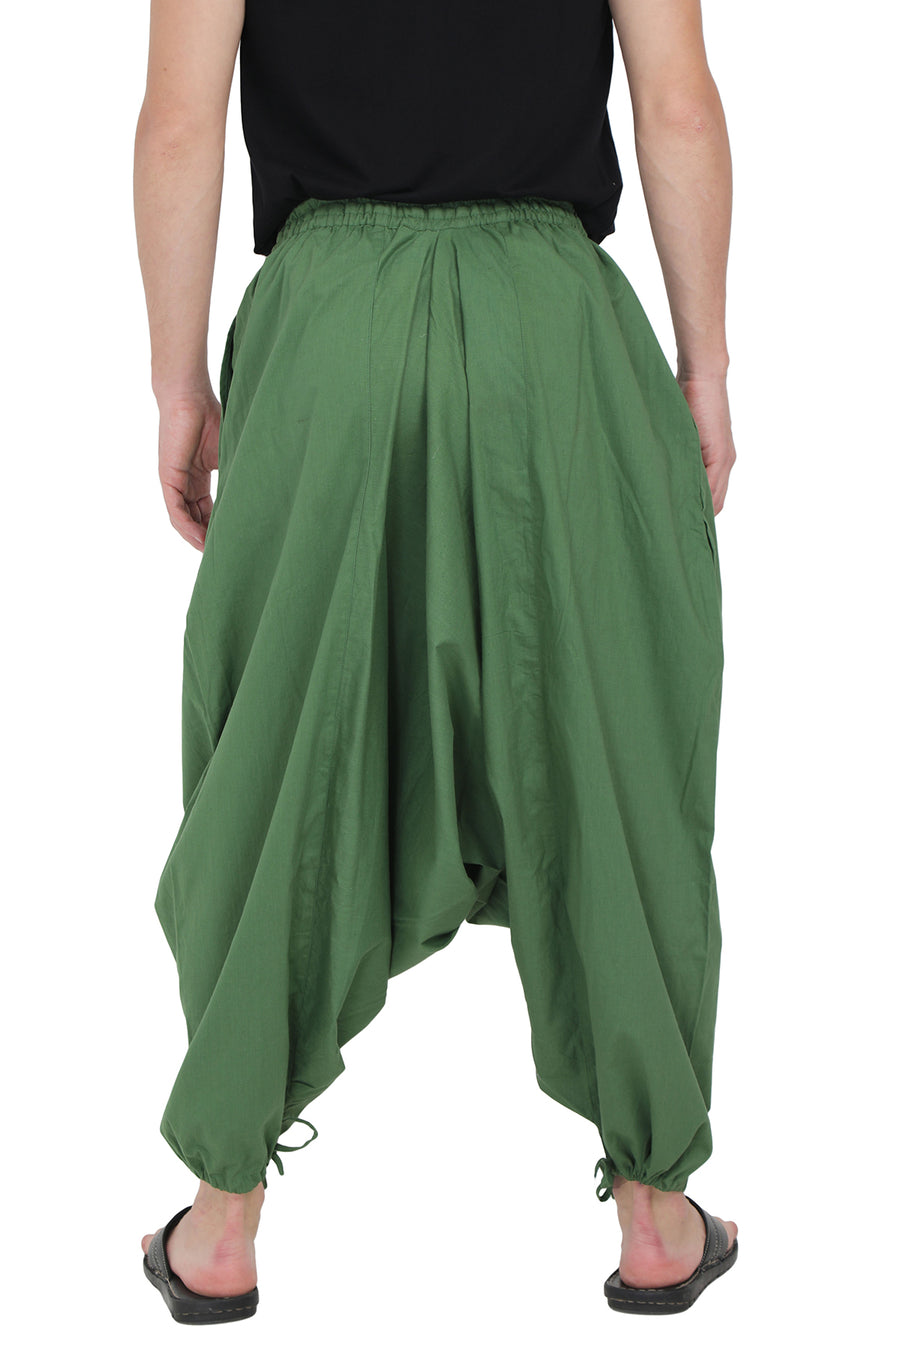 Harem Wide Leg Pants  - Bottom Knot Design